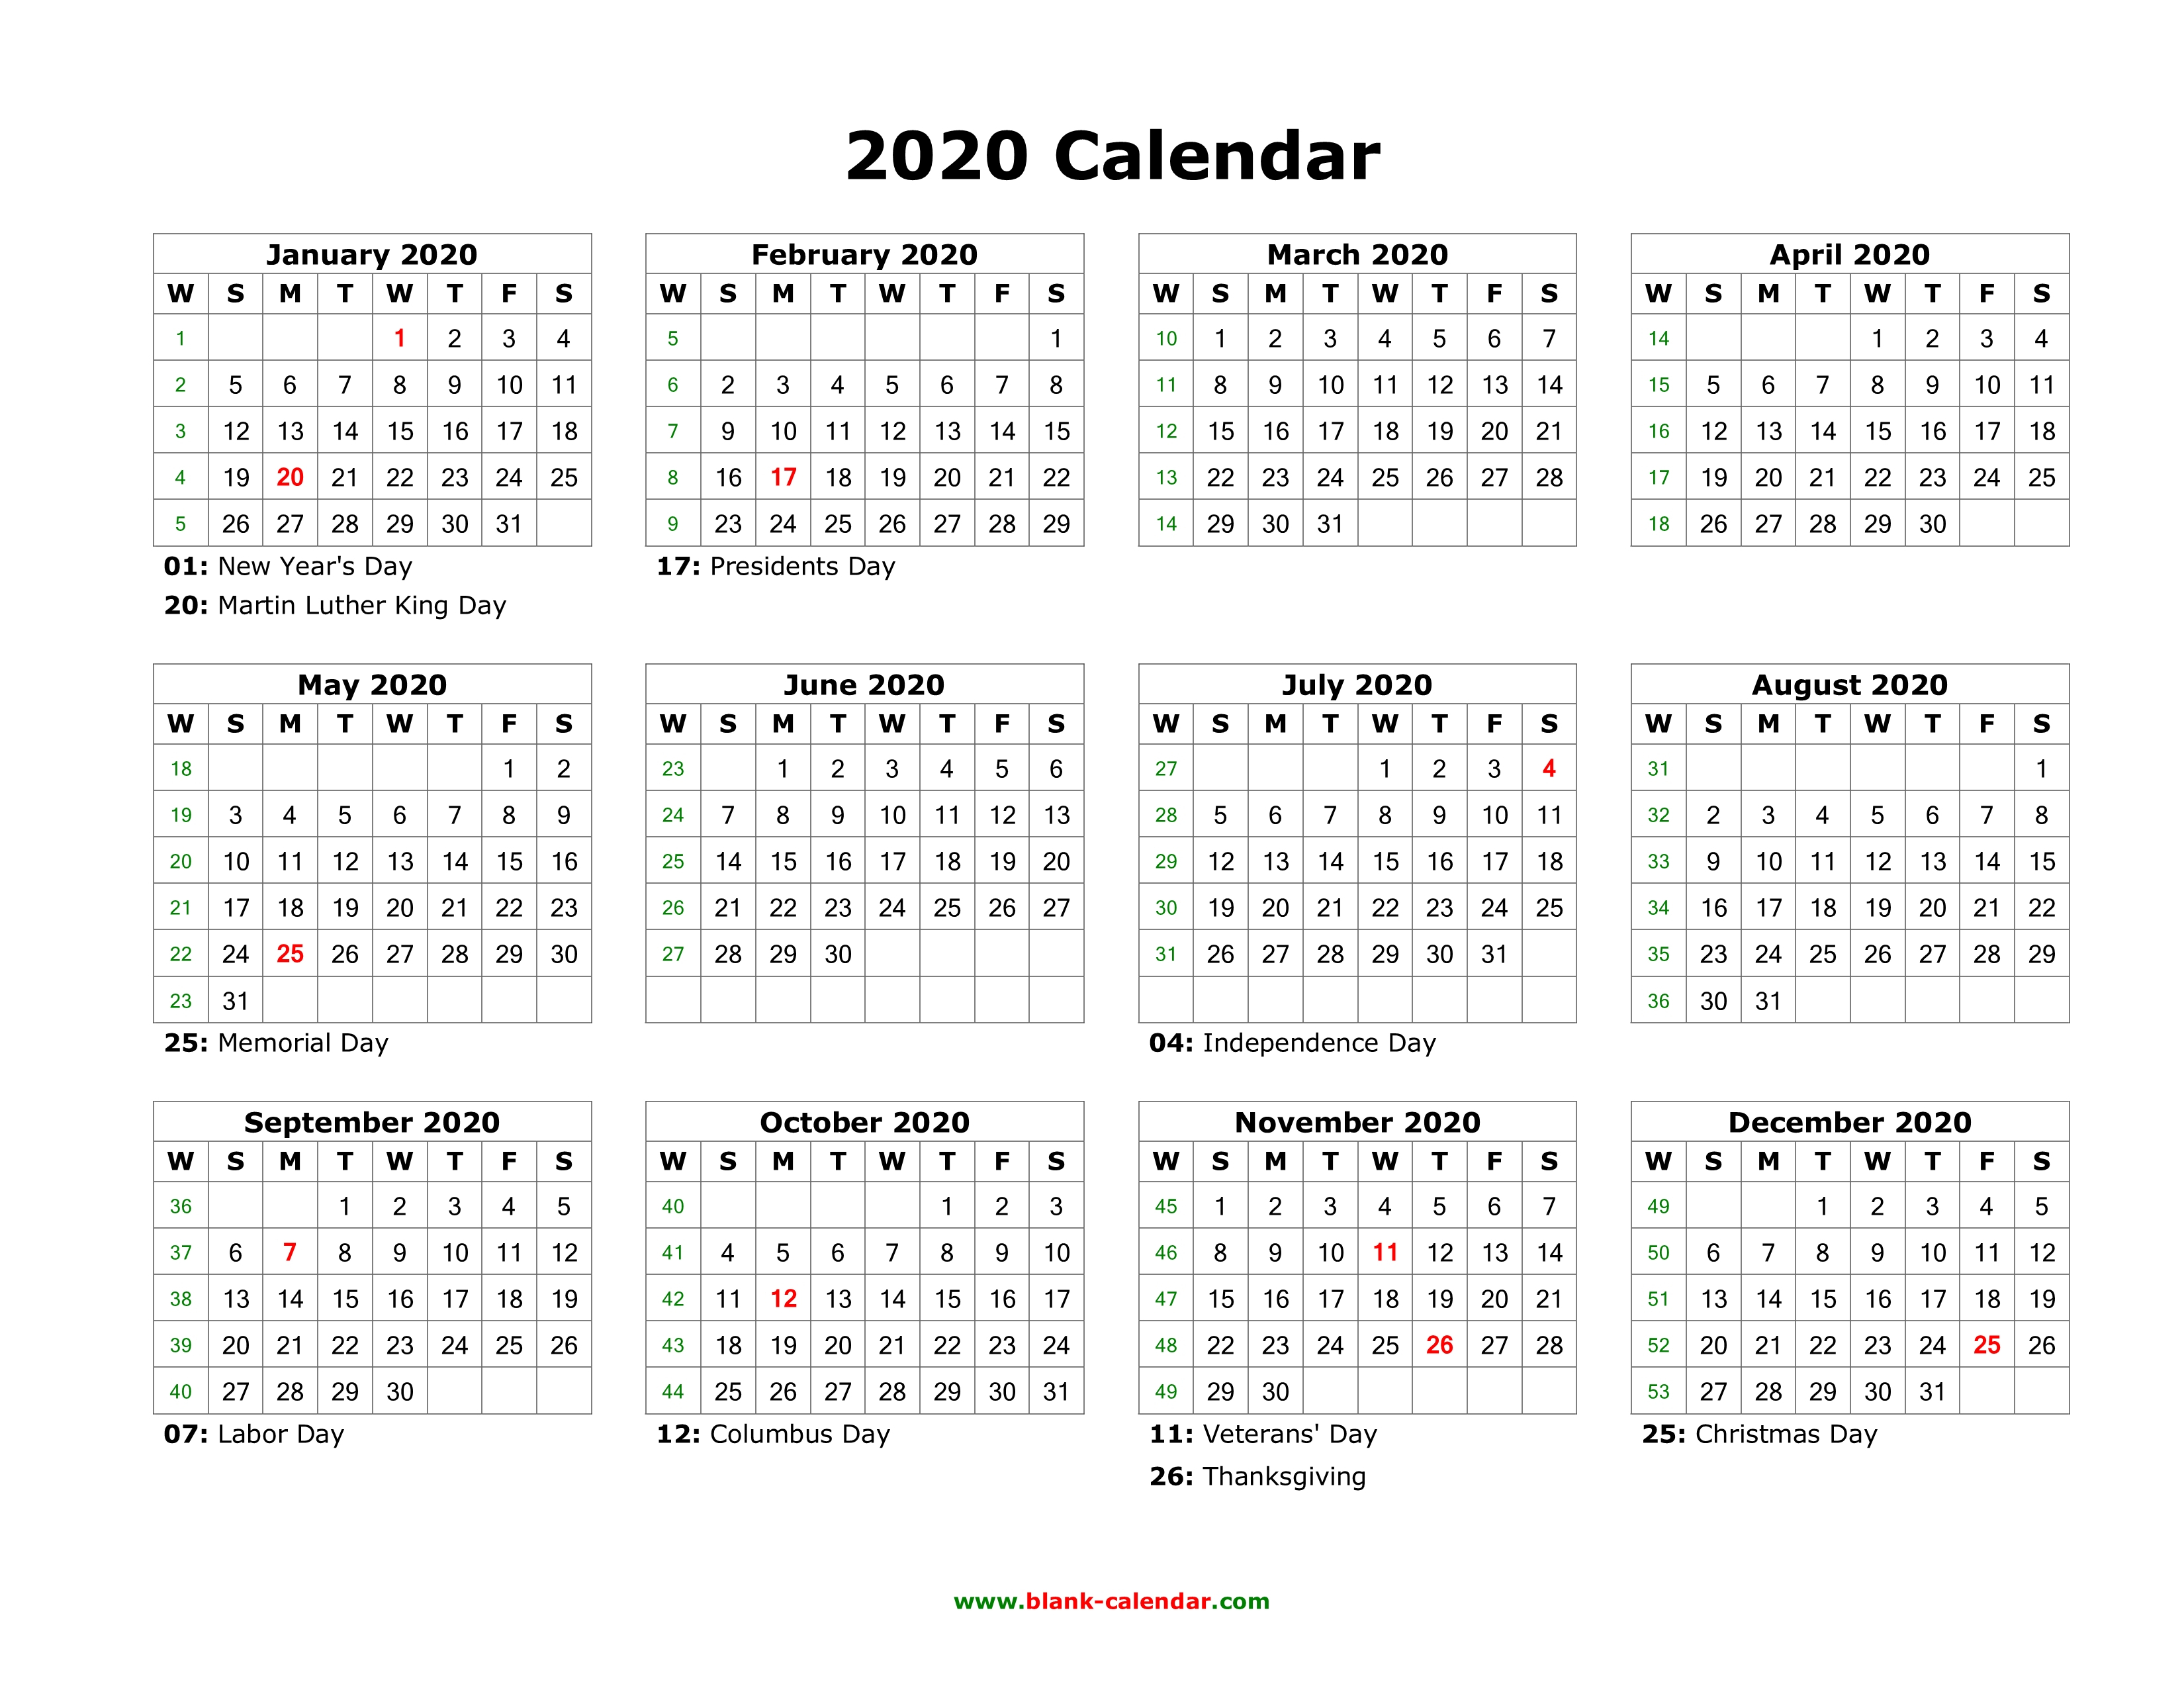 Blank Calendar 2020 | Free Download Calendar Templates throughout Free Printable Weekly Calendar 2020